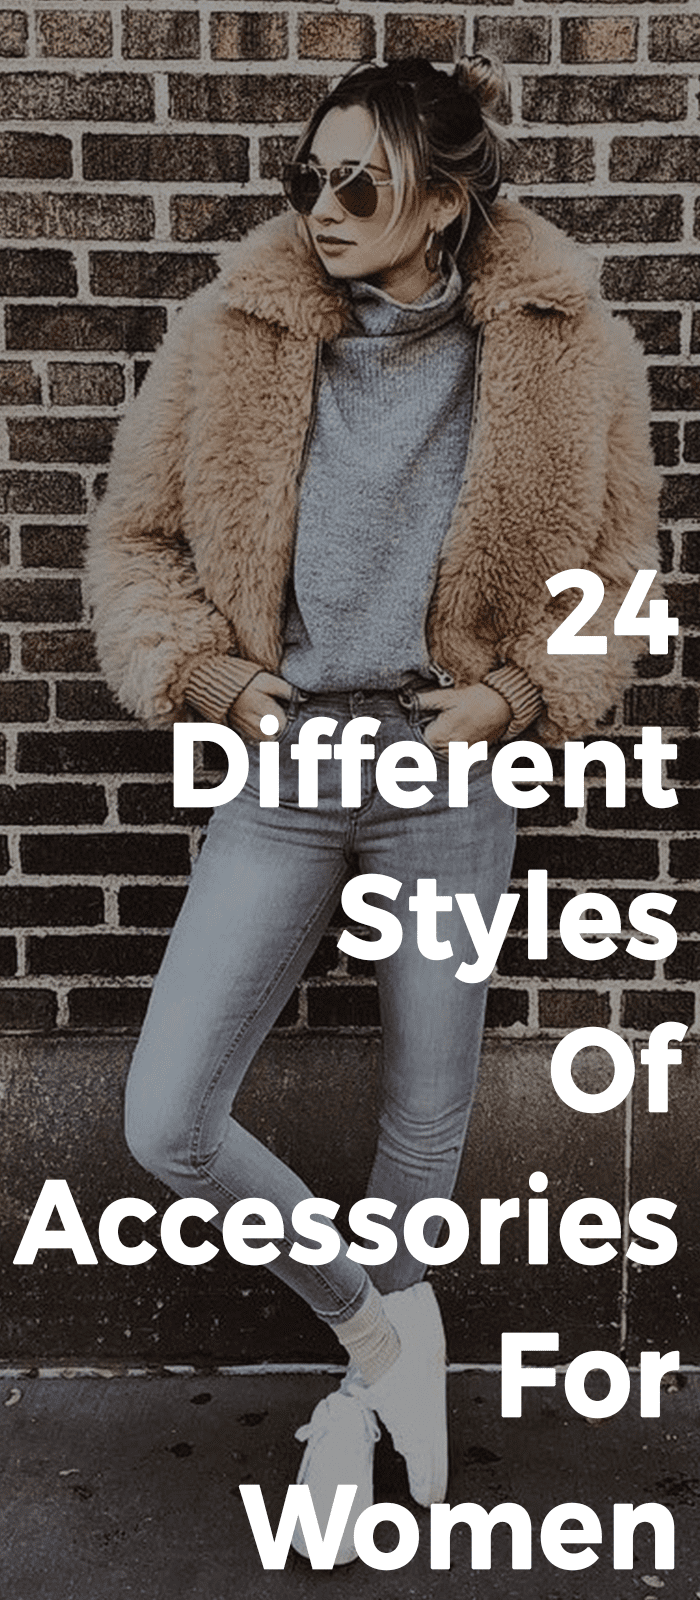 24 Different Style Of Accessories For Women